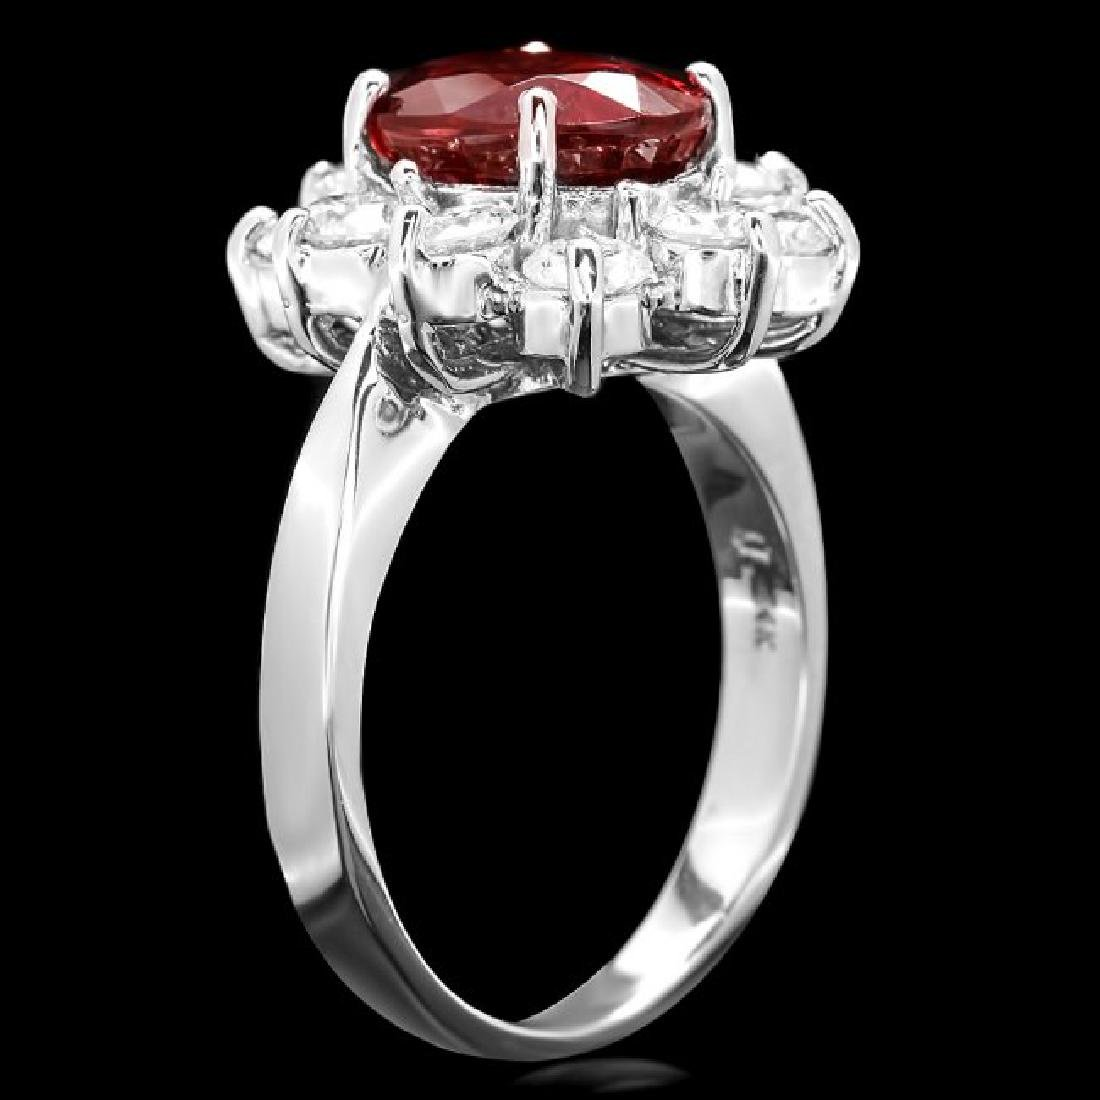 14k White Gold 5.50ct Zircon 1.80ct Diamond Ring - 3